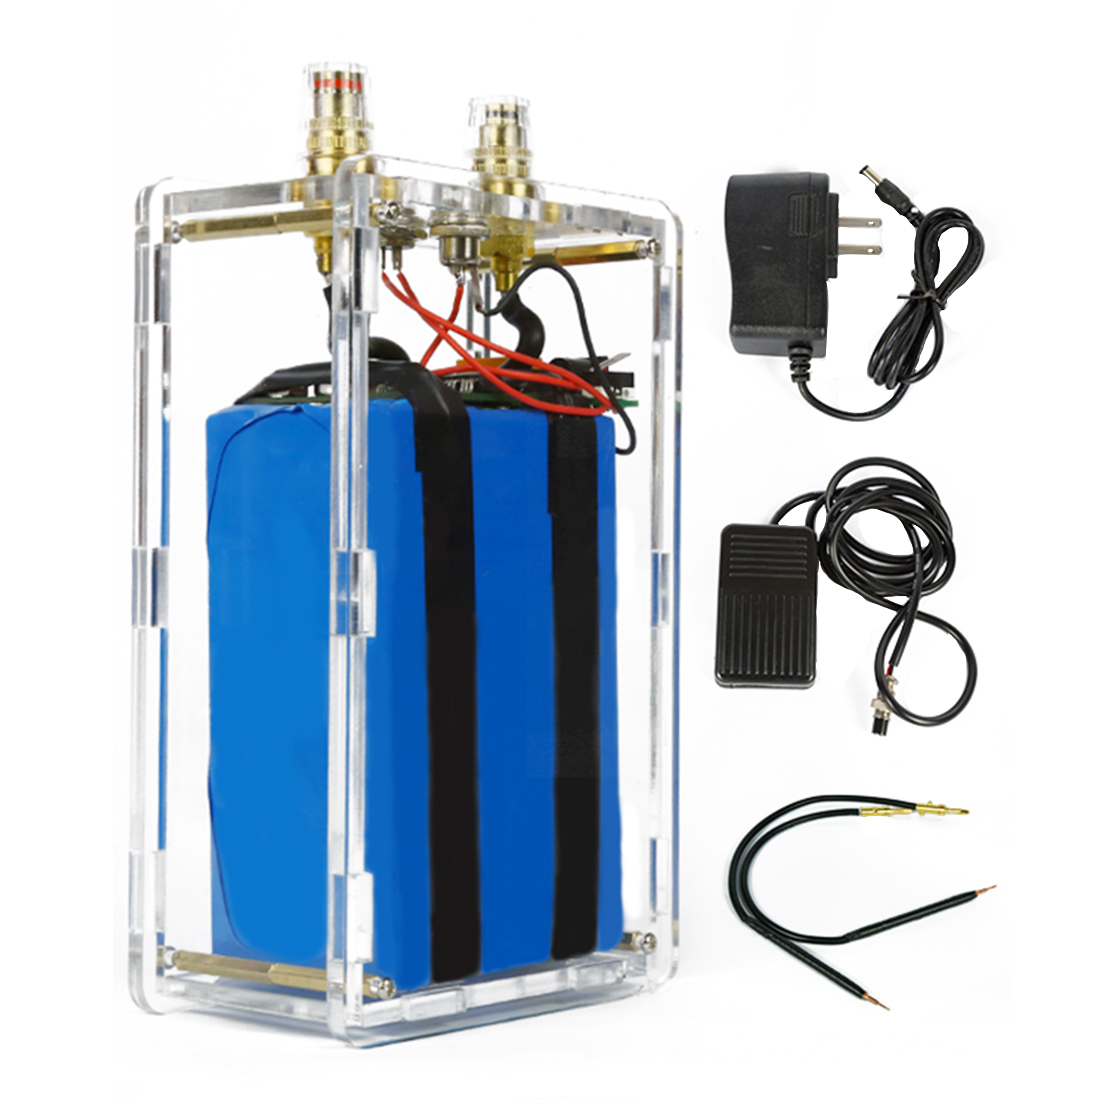 DIY Portable Spot Welder Lithium Battery Powered Spot Welder With Acrylic Shell Programming Toy Parts 2020 New Arrival